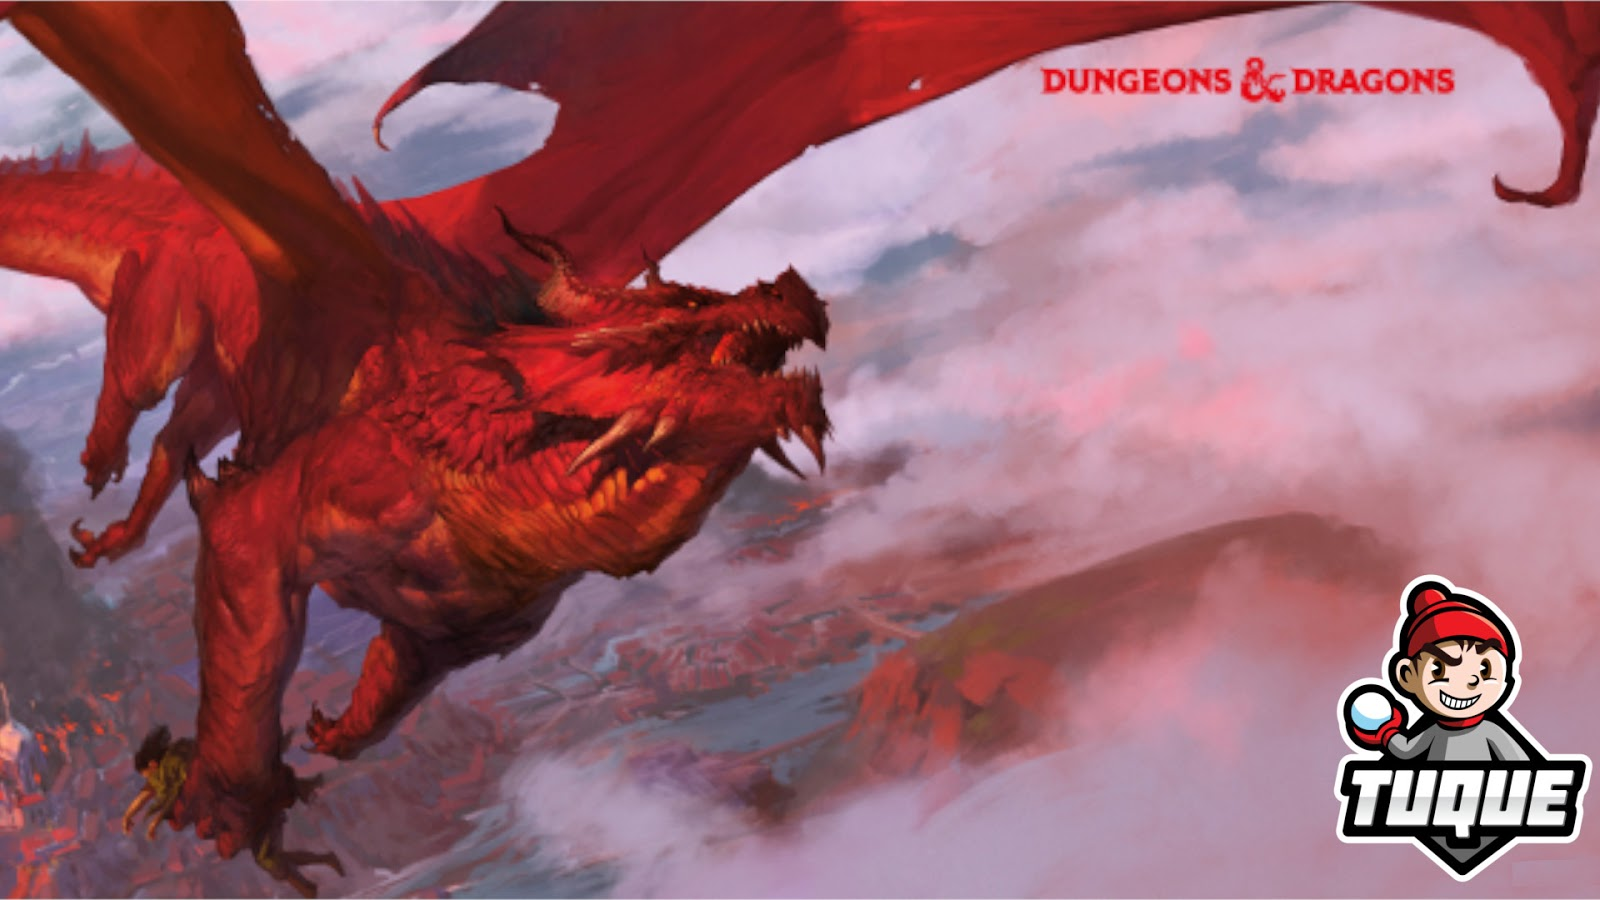 News Collider - Board Game NewsWizards of the Coast Acquires Tuque Dungeons and Dragons video game in development